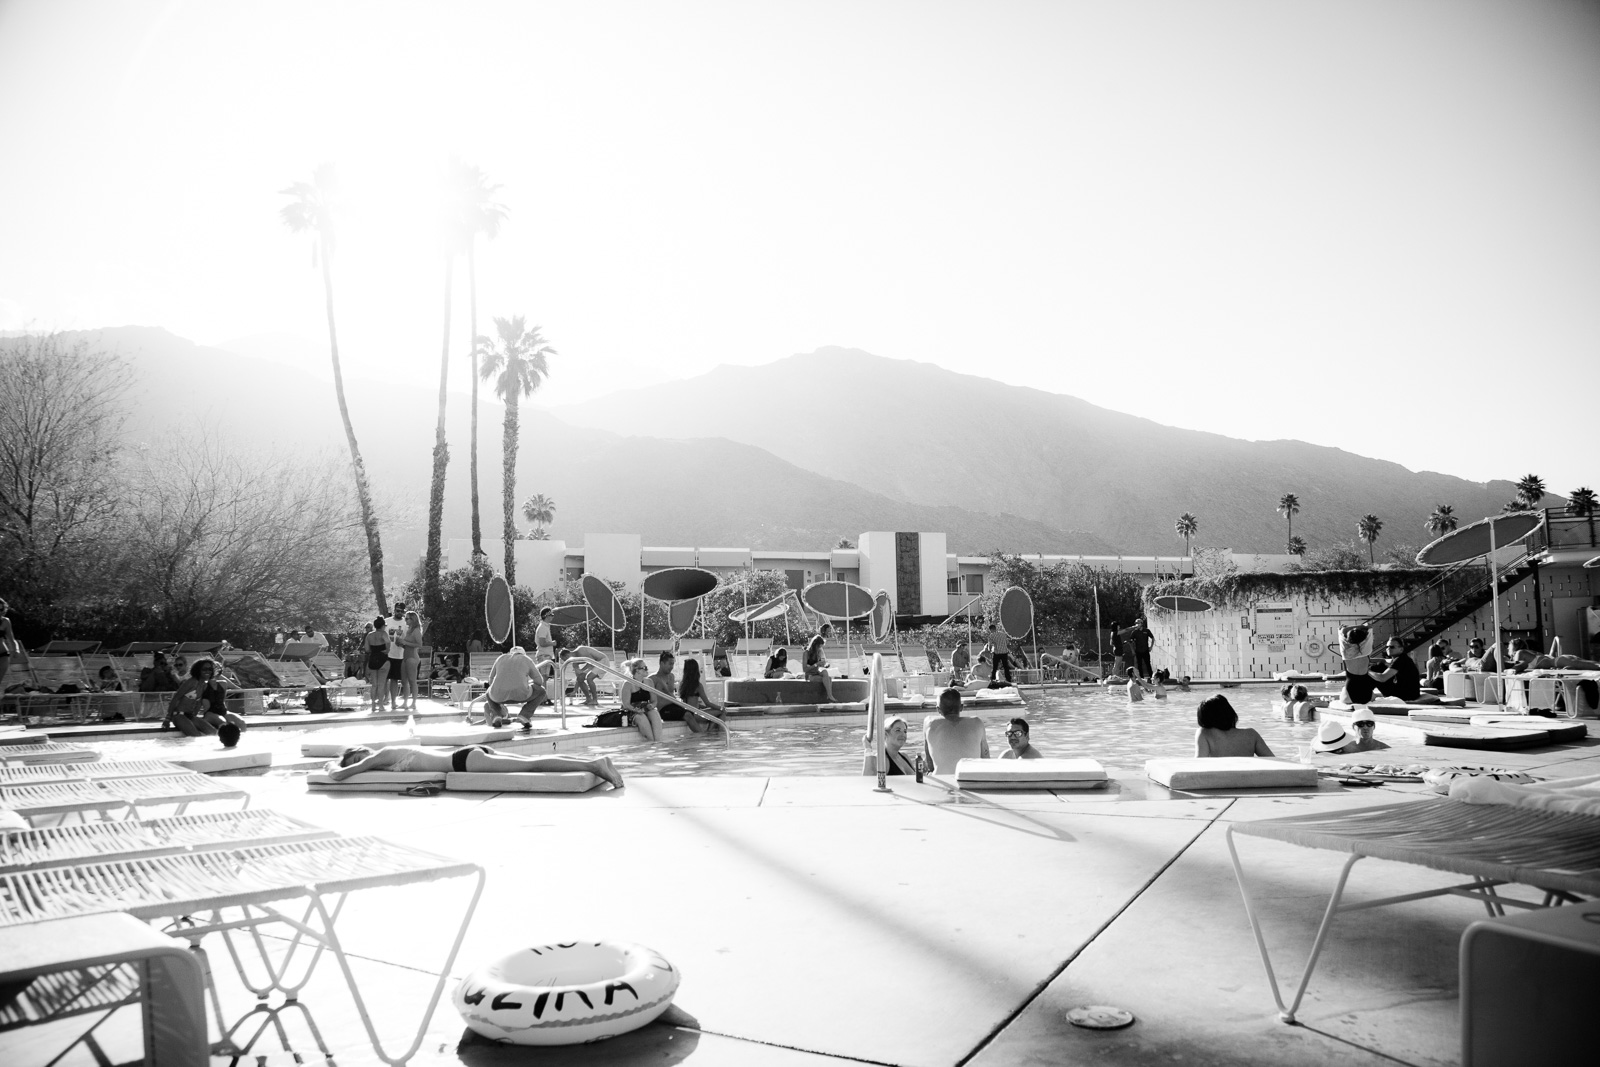 The Do-Over Desert Sunday on April 12, 2015 at The Commune at Ace Hotel & Swim Club in Palm Springs, California